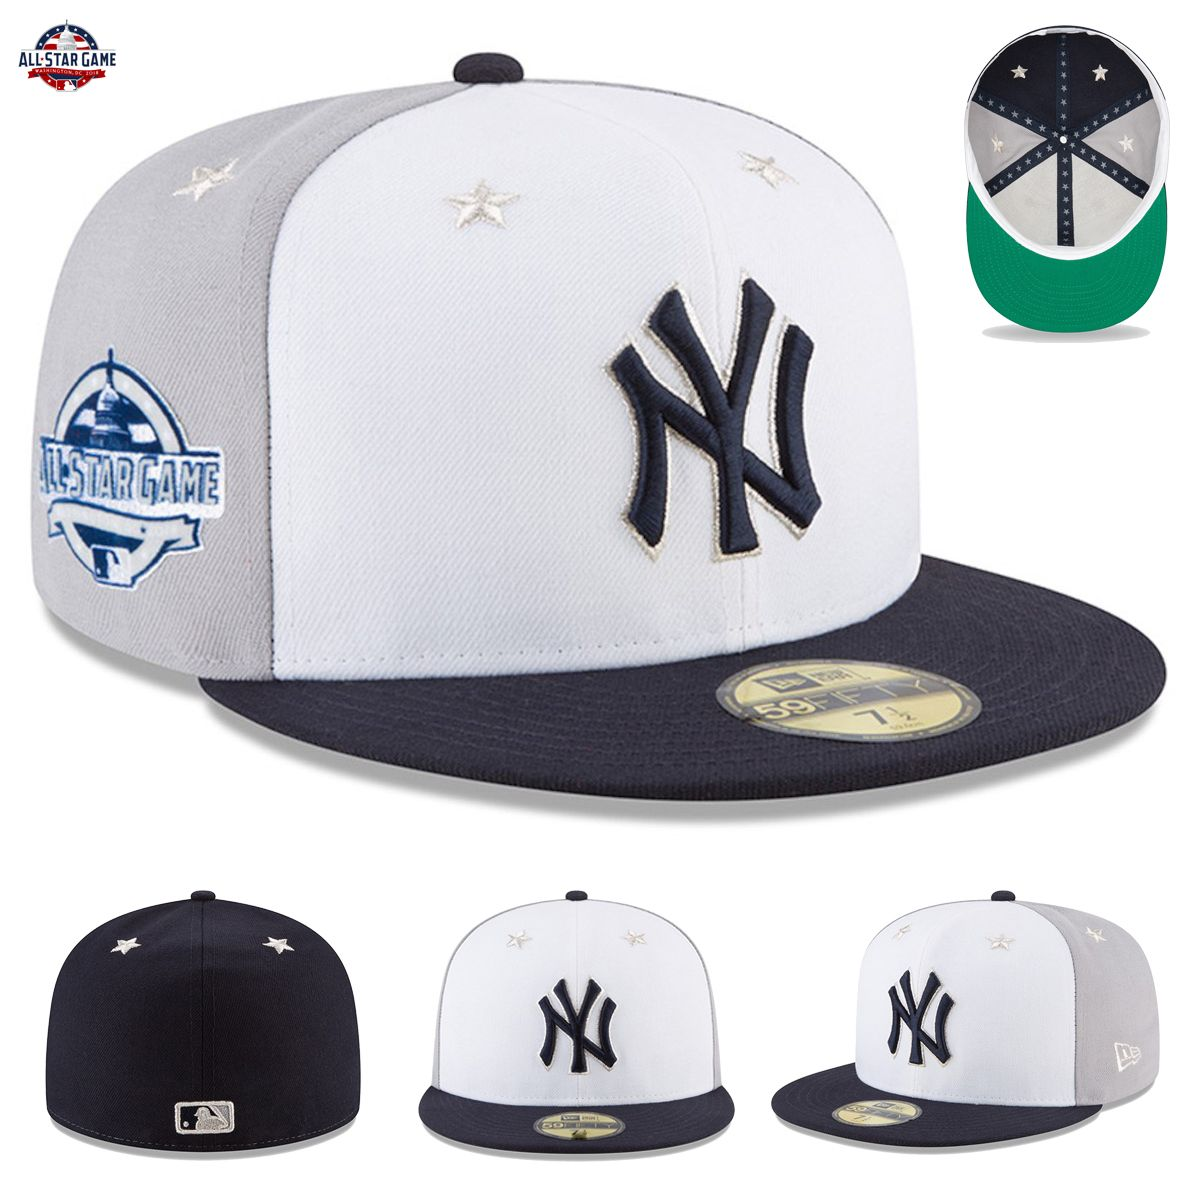 1dd9350ac Details about New York Yankees New Era 2018 MLB All-Star Game Hat ...